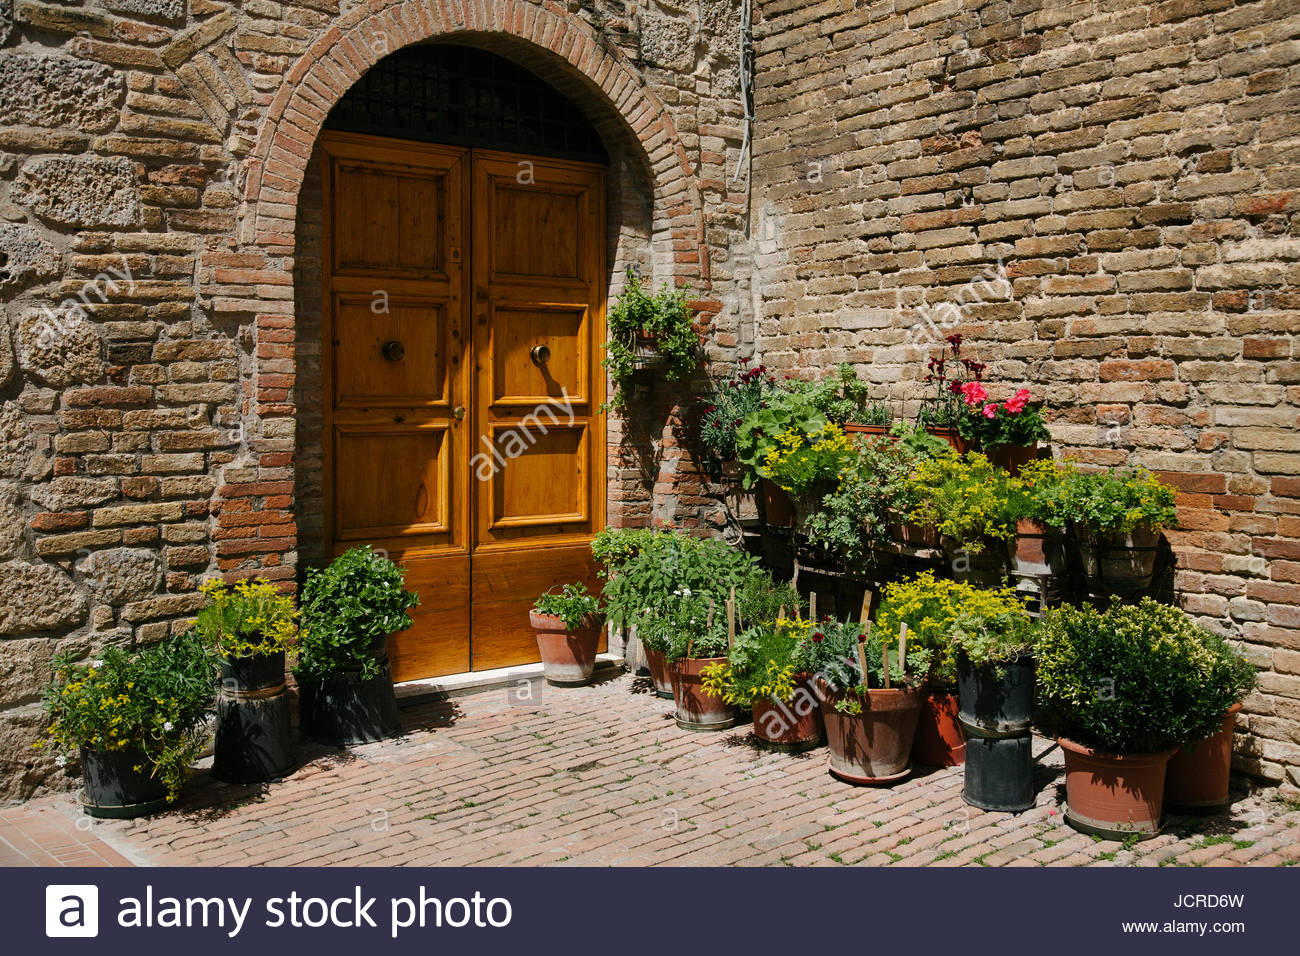 Potted plants by a closed door in San Gimignano. - Stock Image